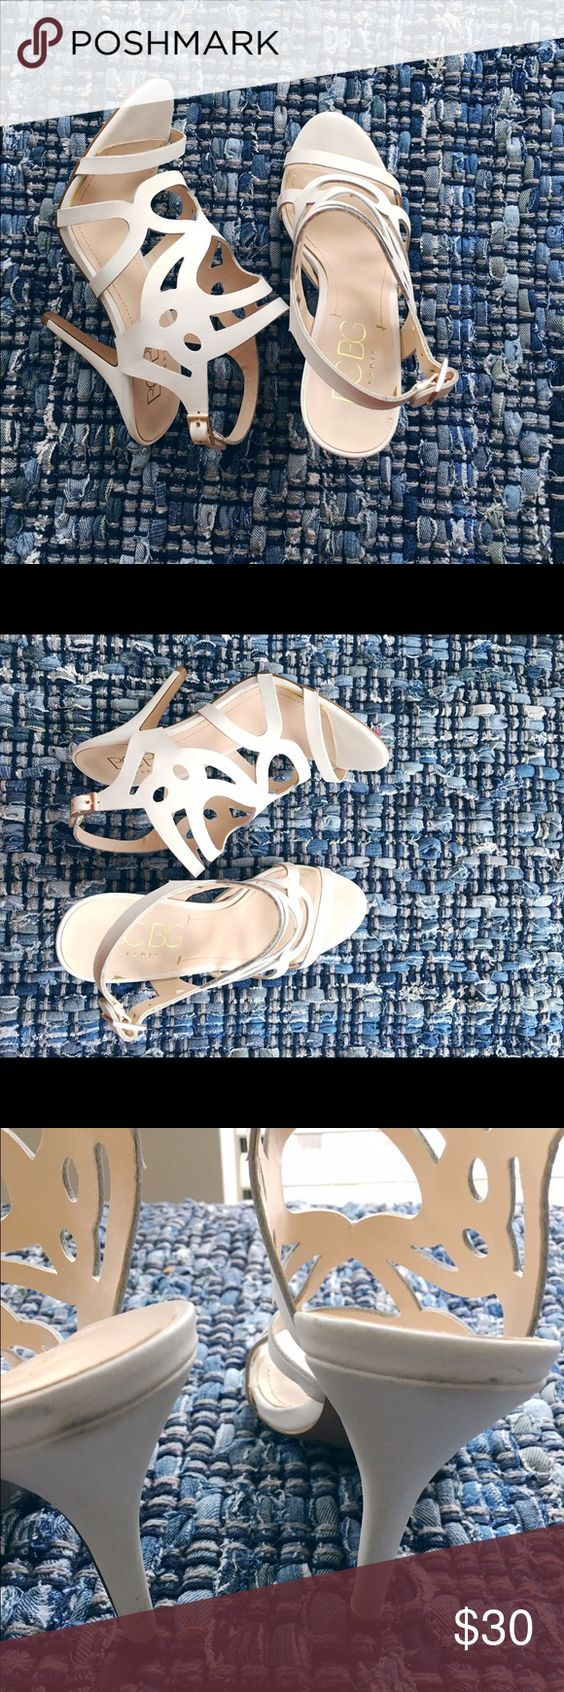 BCBG shoes!🎉🎉 Gorgeous white heels! Rarely won. Slight blemishes on heels. Size 7.5. BCBG Shoes